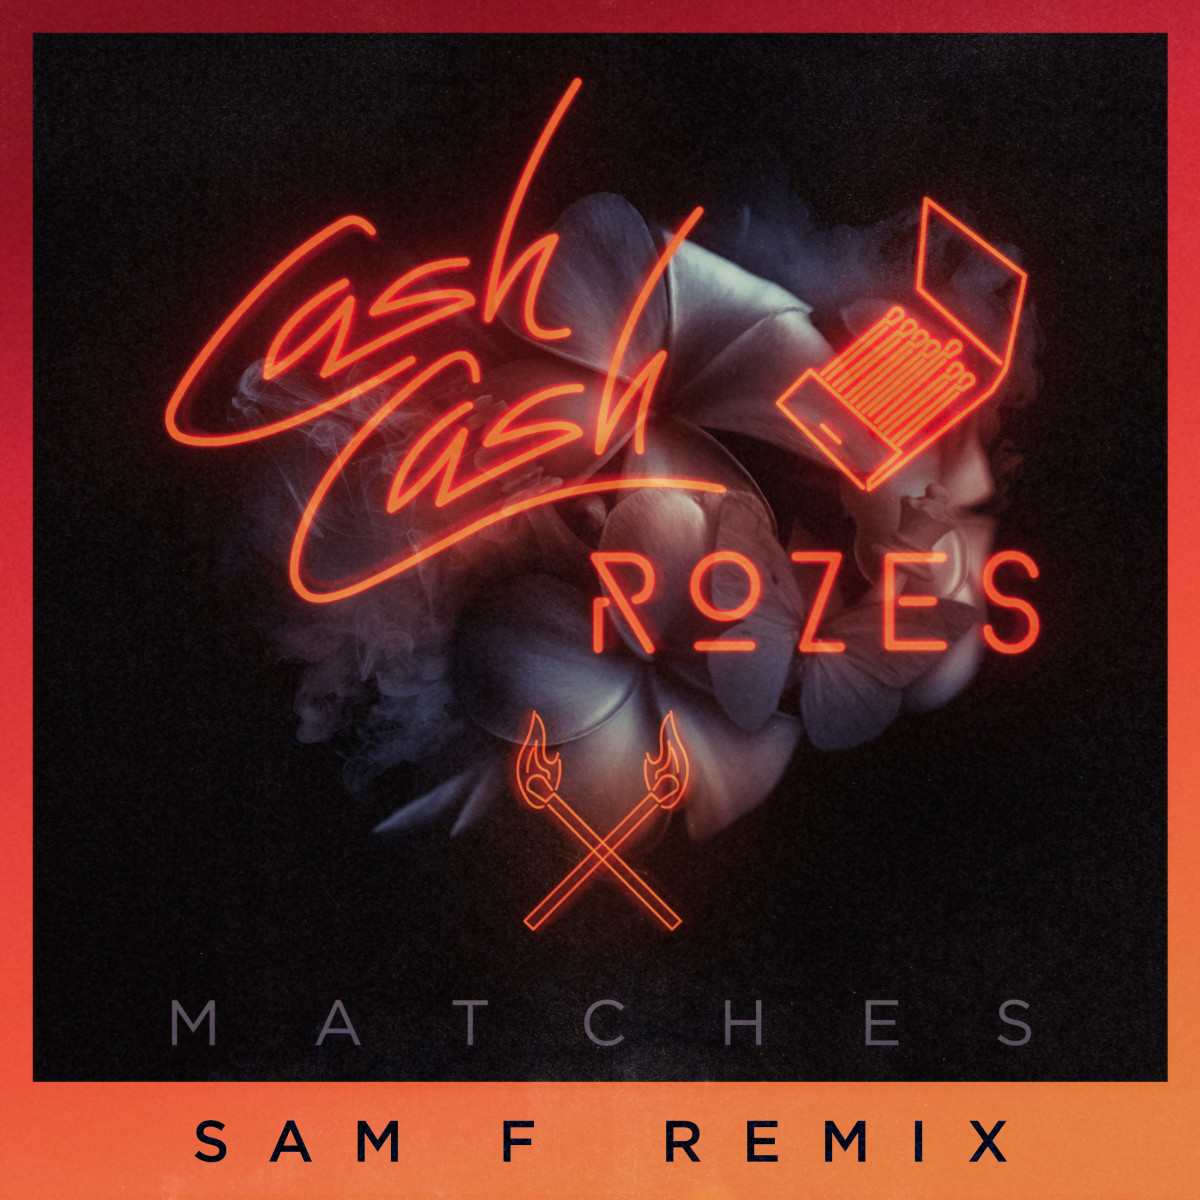 Matches - Sam F